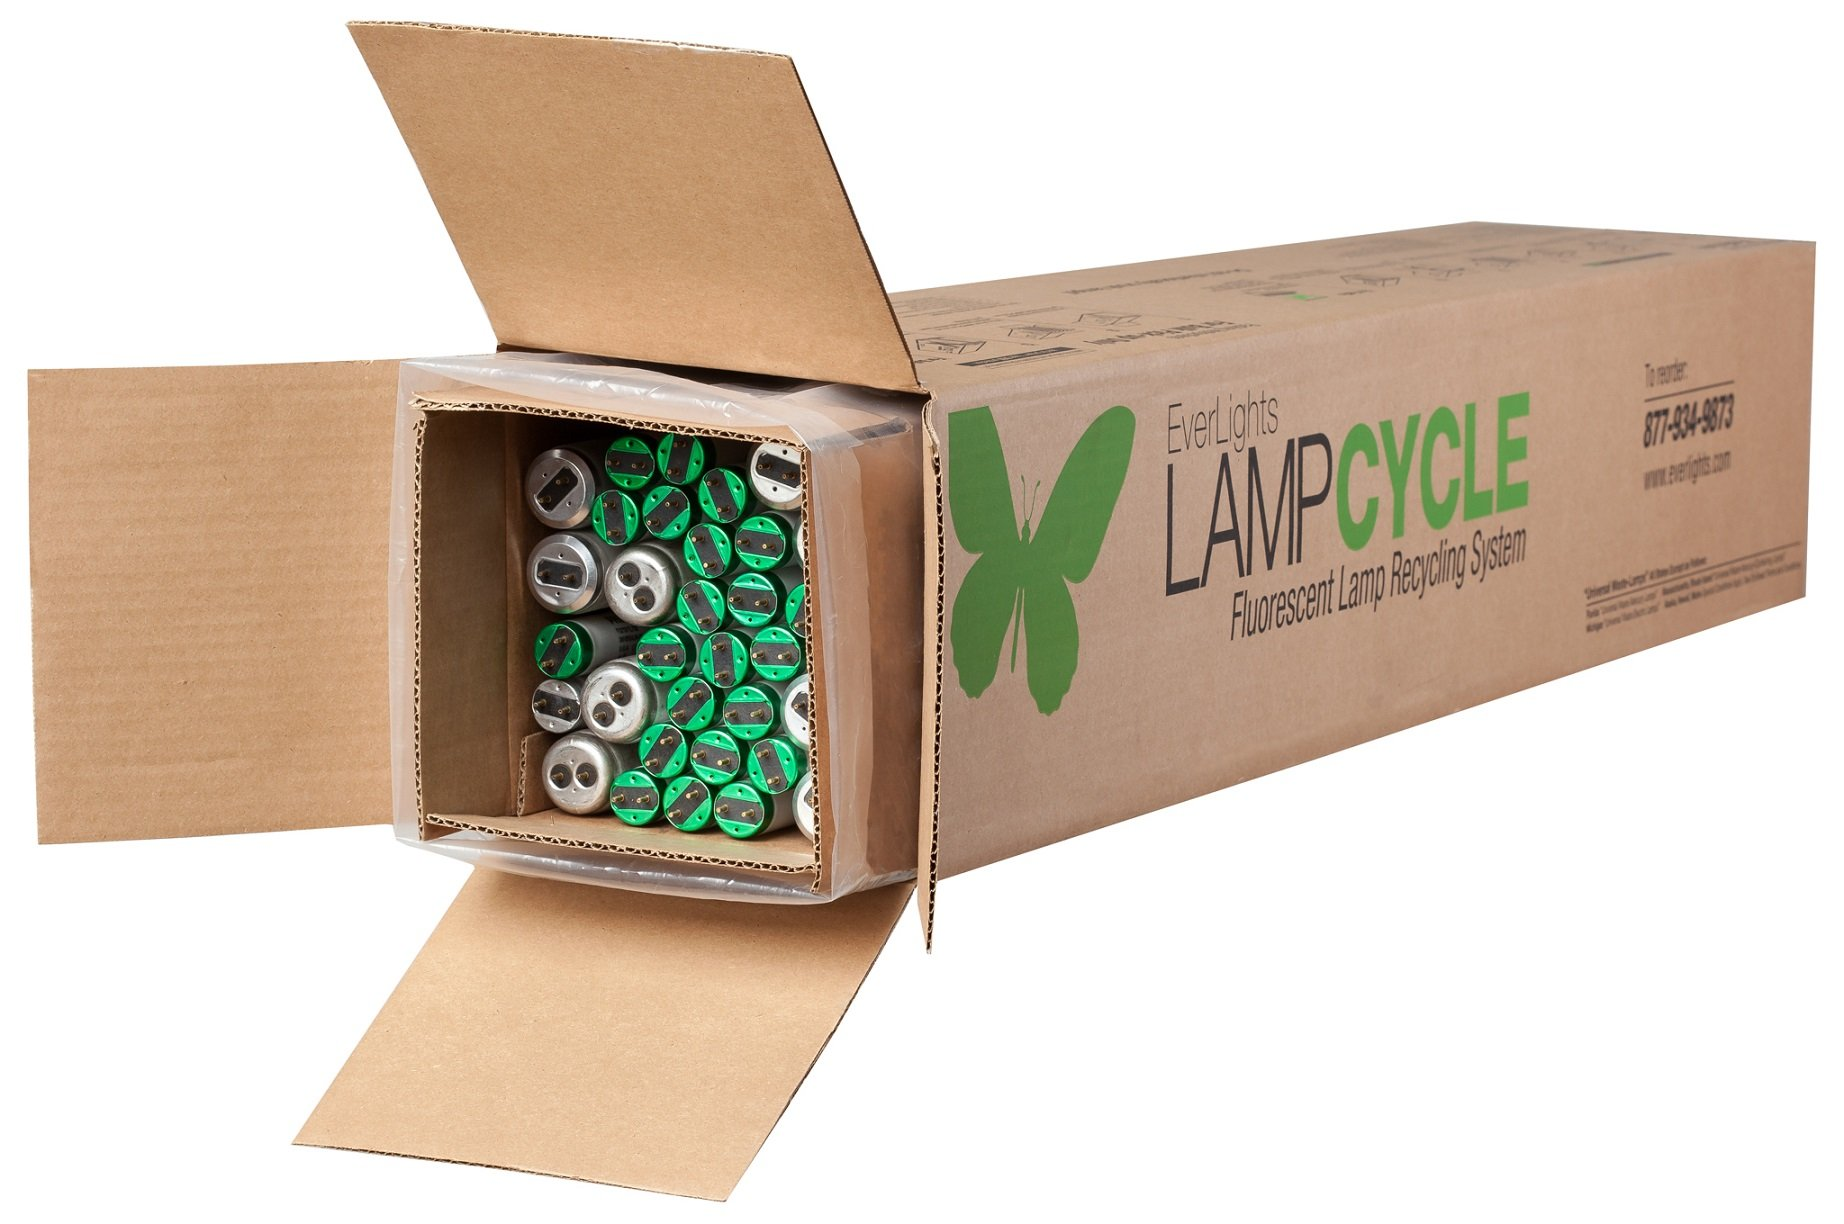 EverLights R4T860 LampCycle 4-Foot Linear Fluorescent Tube Recycling Kit, Medium